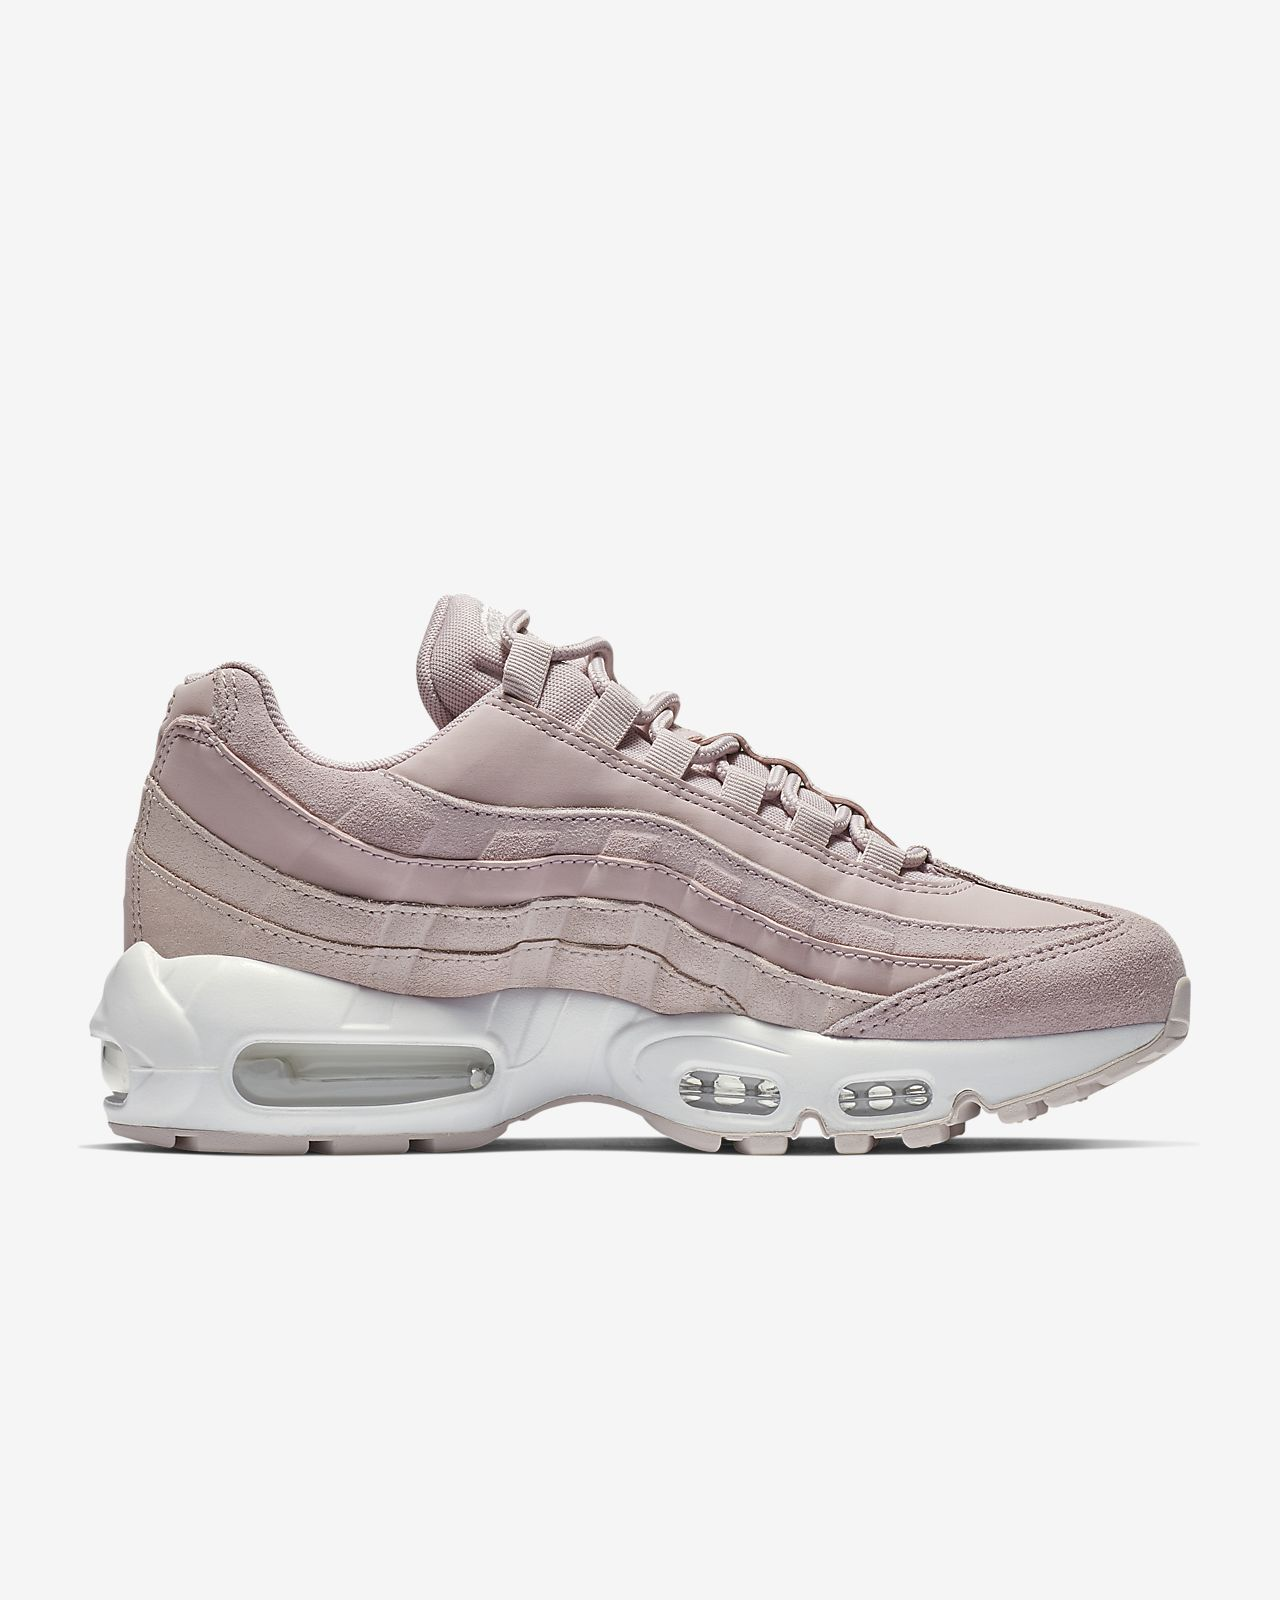 0867a85a3f17 Nike Air Max 95 Premium Women s Shoe. Nike.com AT